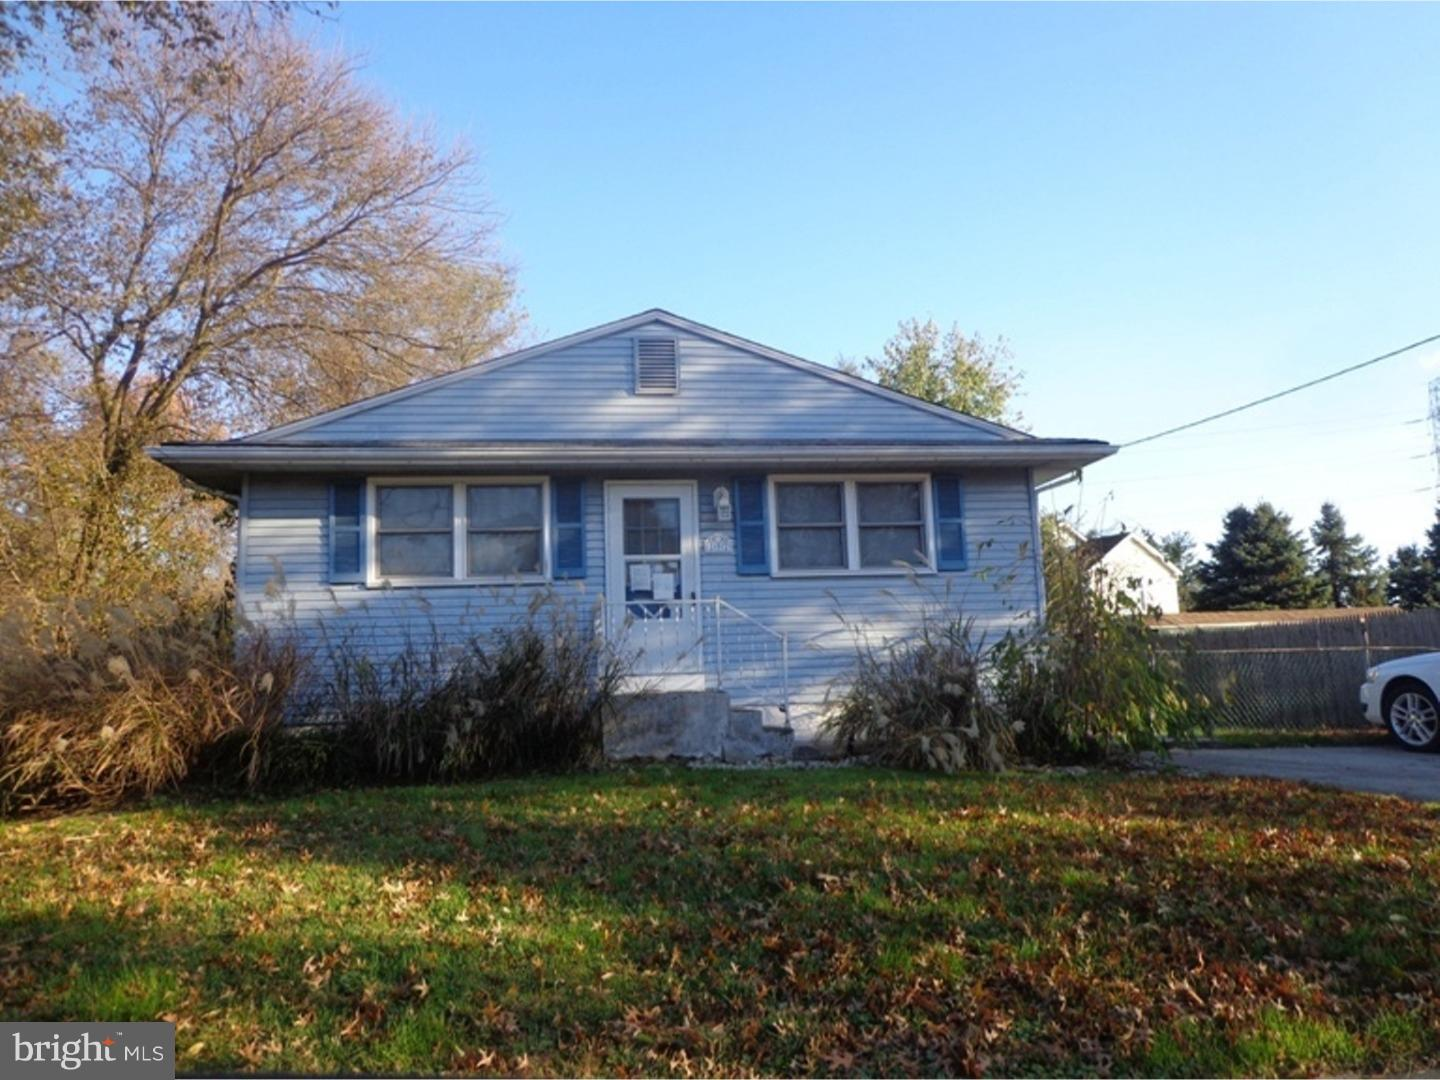 Single Family Home for Sale at 192 BERGEN Avenue Thorofare, New Jersey 08086 United States